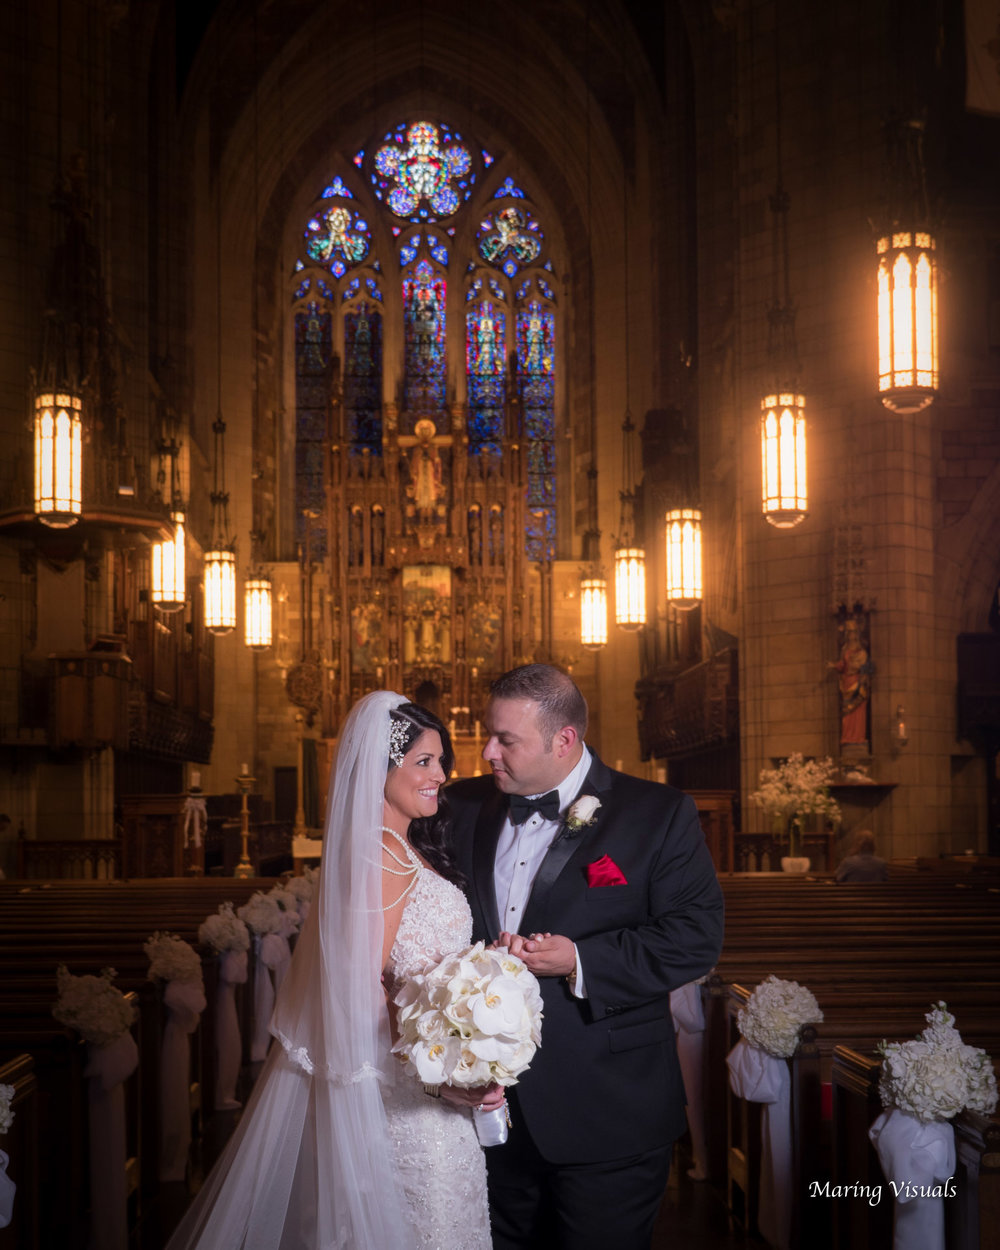 Taking portraits in the center aisle rather than the alter adds grandeur.